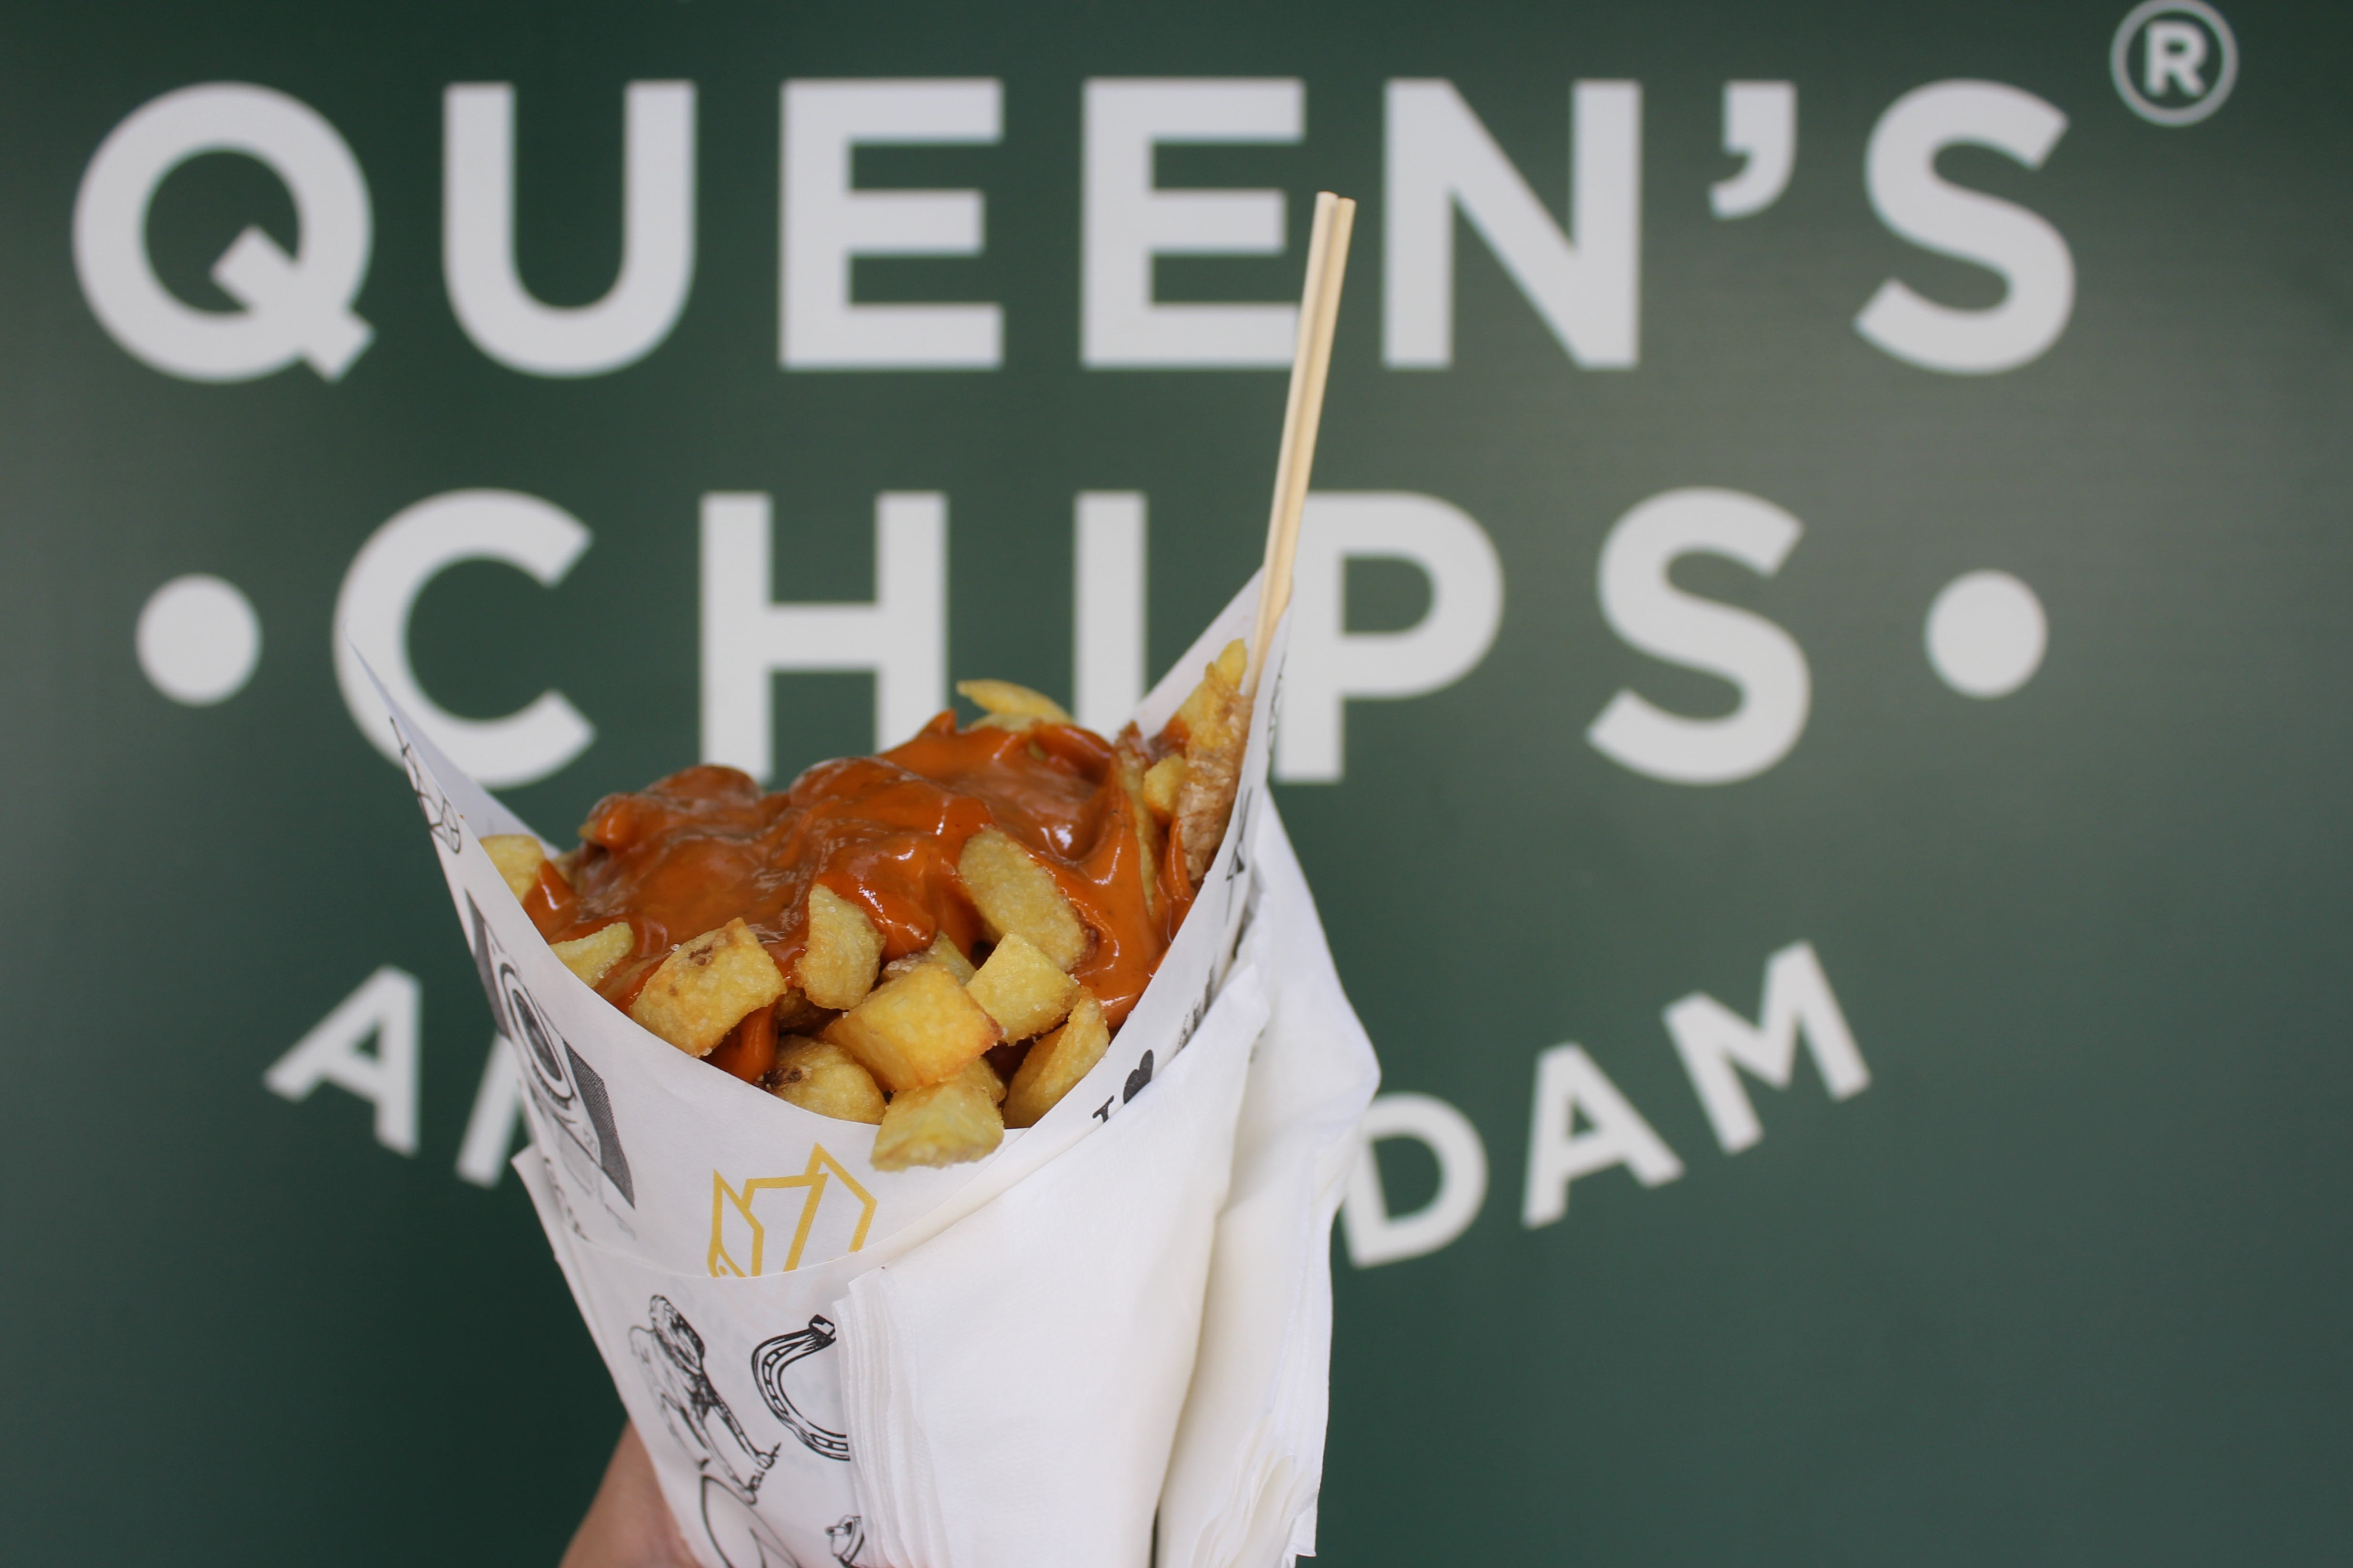 Queen's chips Milano